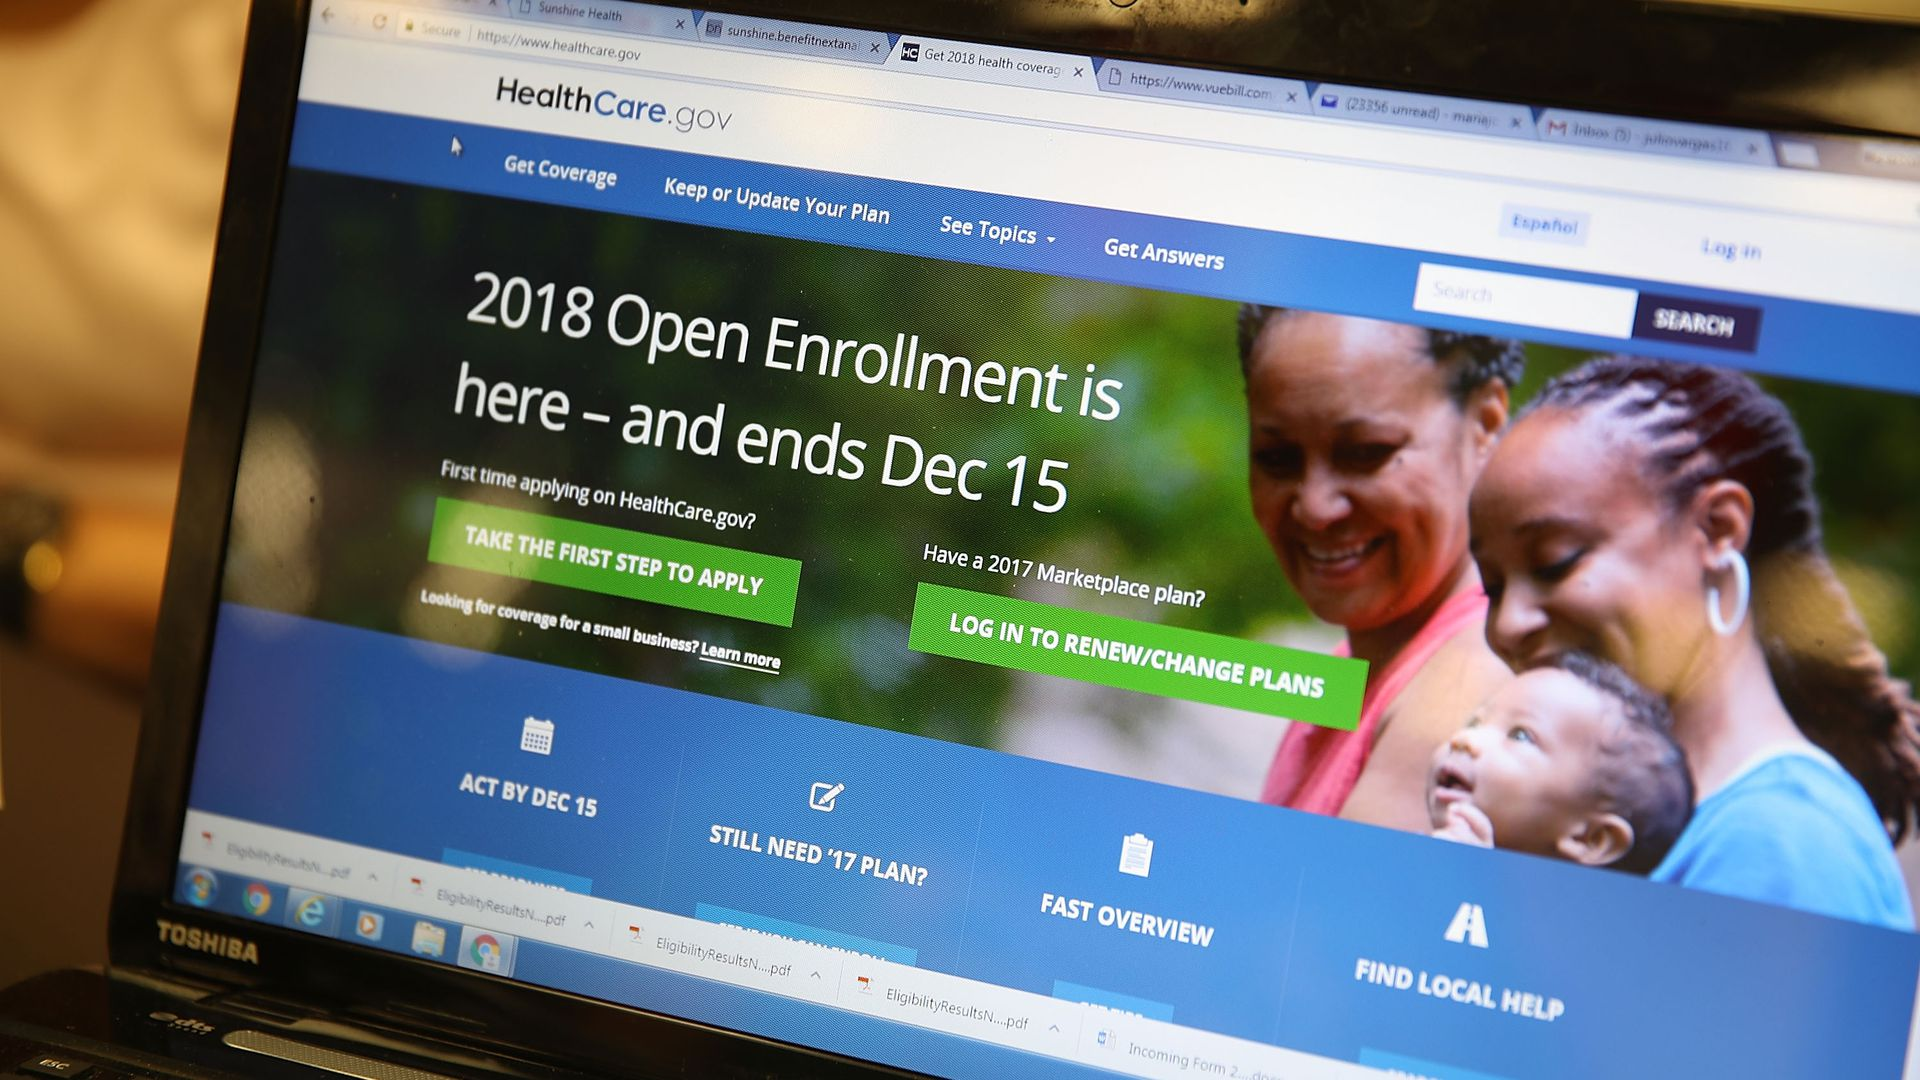 A screenshot of the Affordable Care Act enrollment website